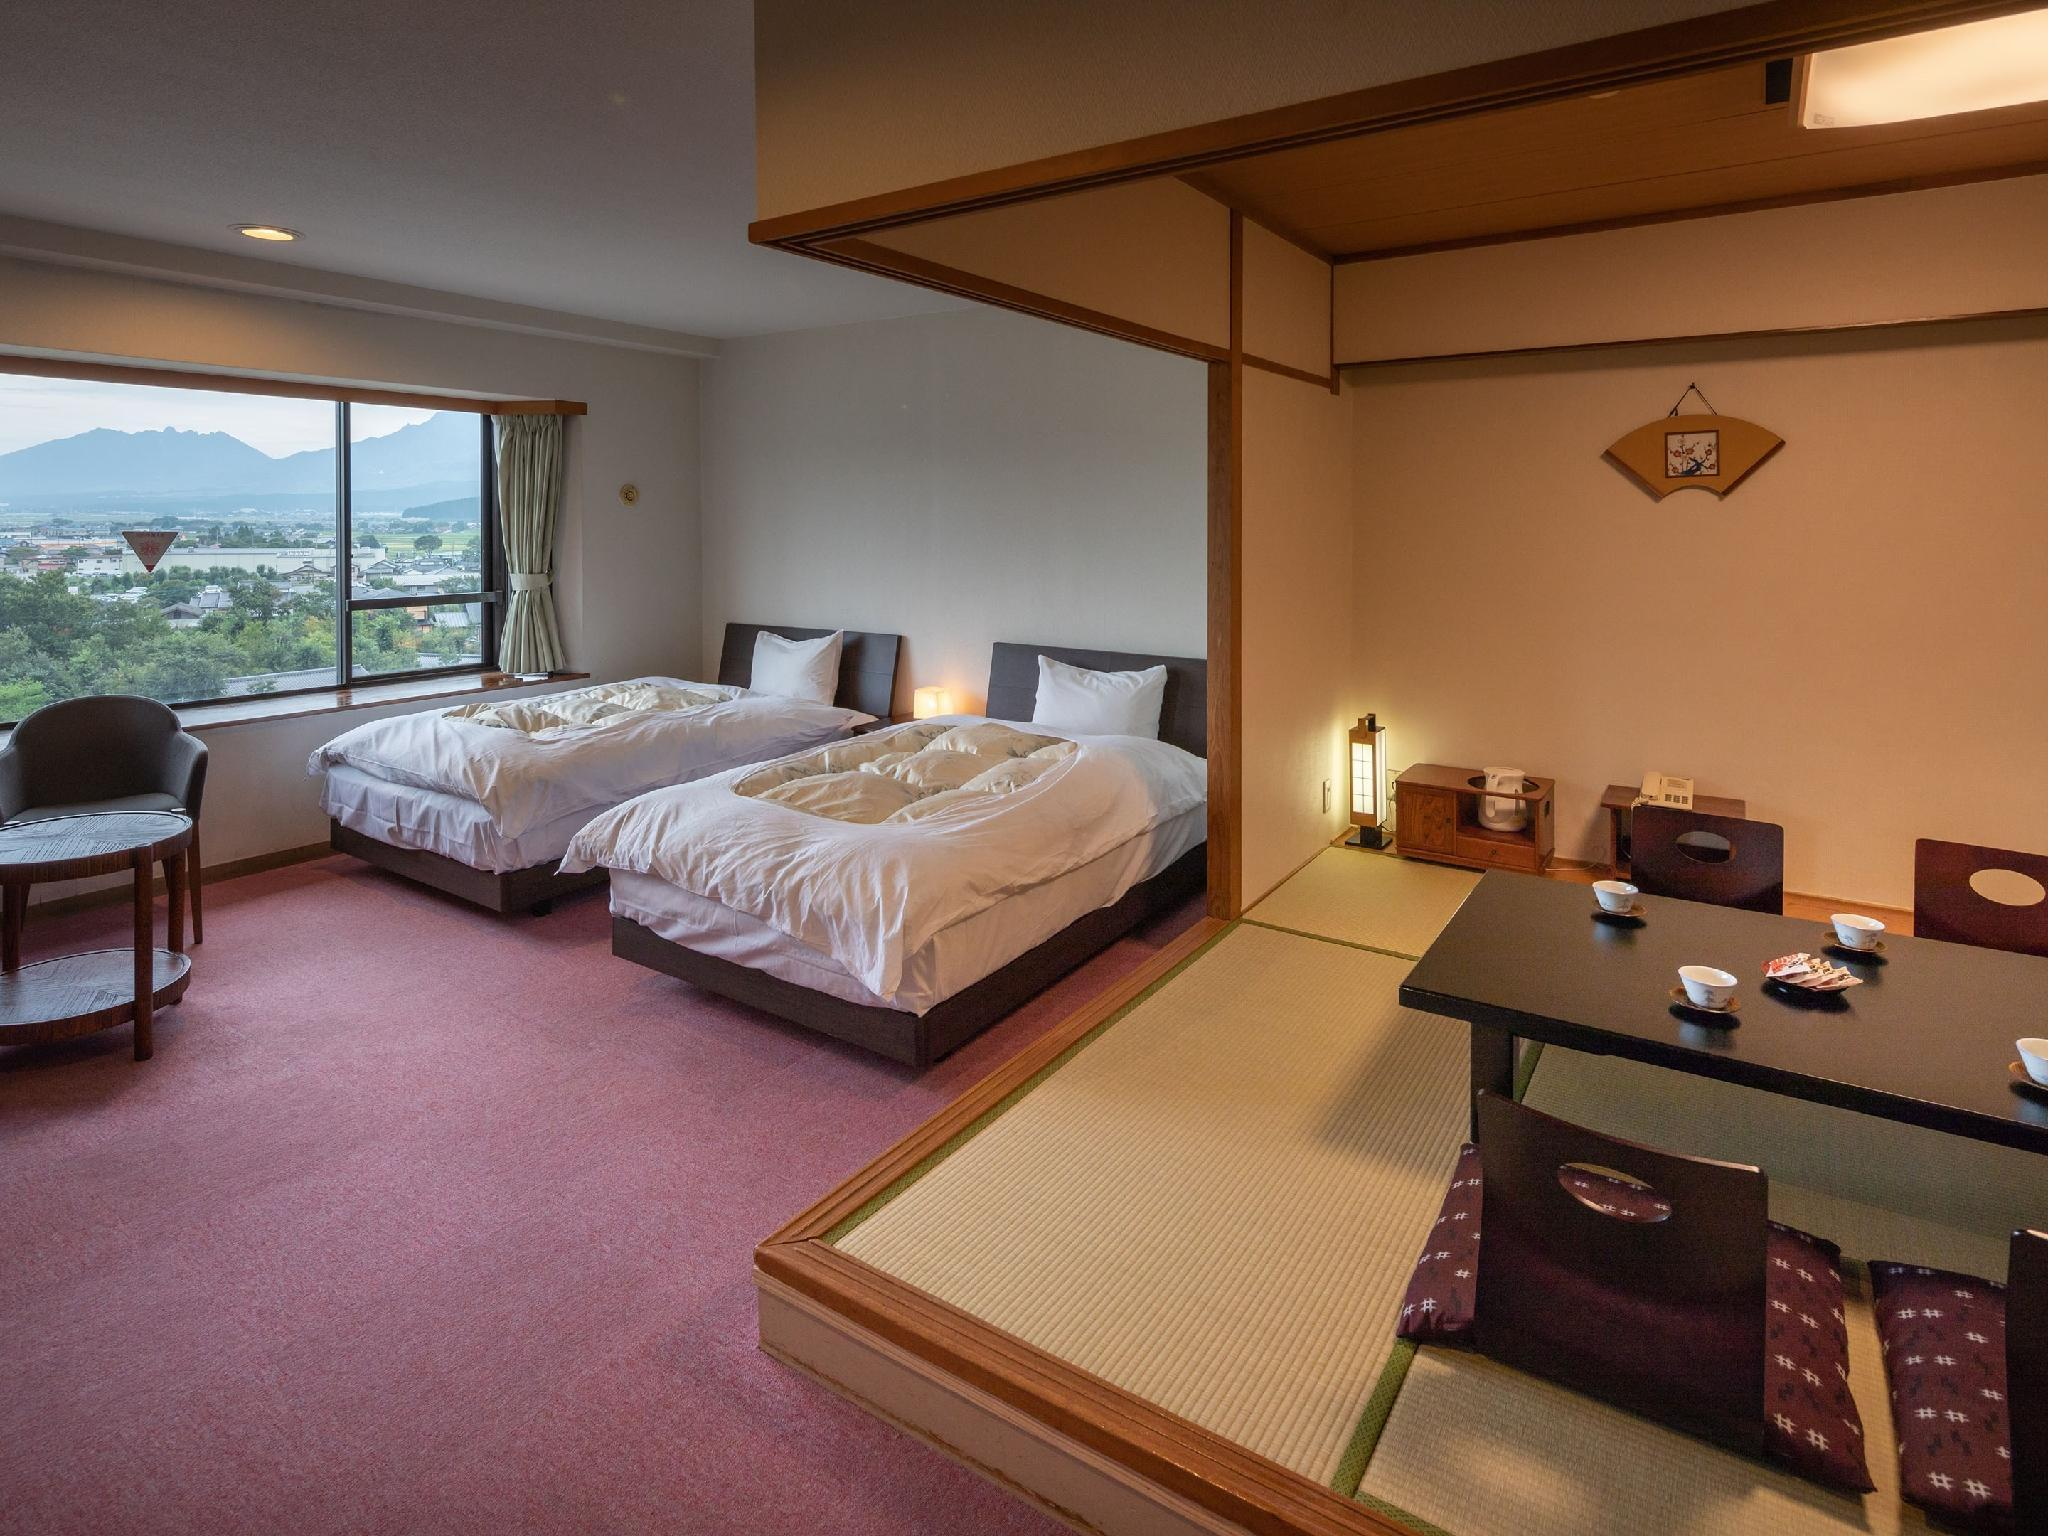 Japanese/Western-style Room (Japanese-style Room + Twin Bed, Wadaya Type, Ichibankan Building)